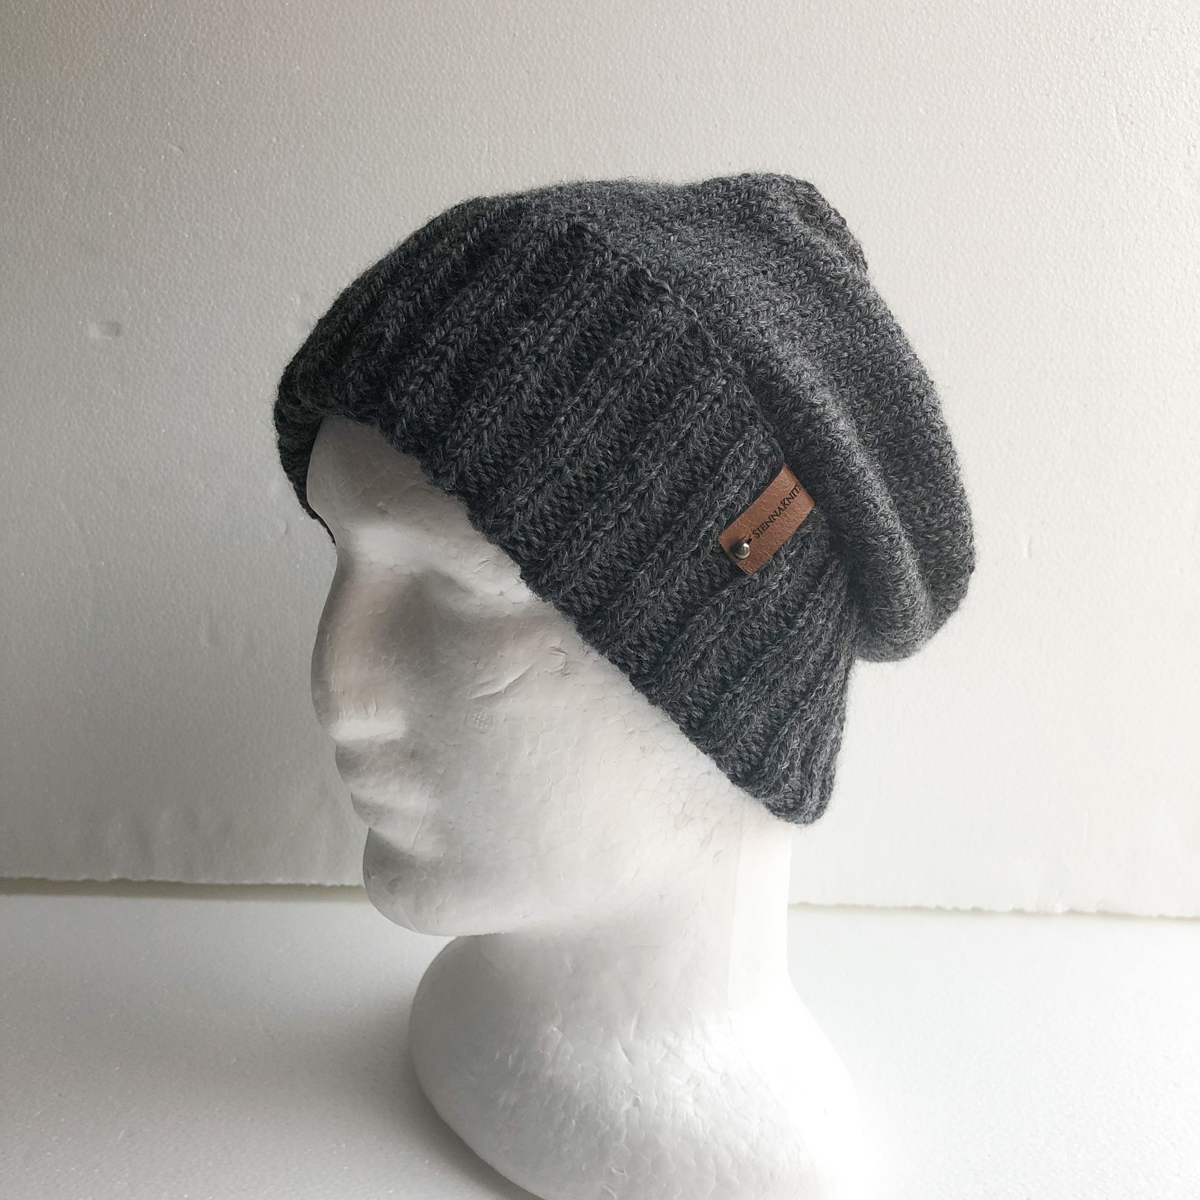 100% Wool Charcoal Knit Men Beanie With Foldable Brim By SiennaKnits